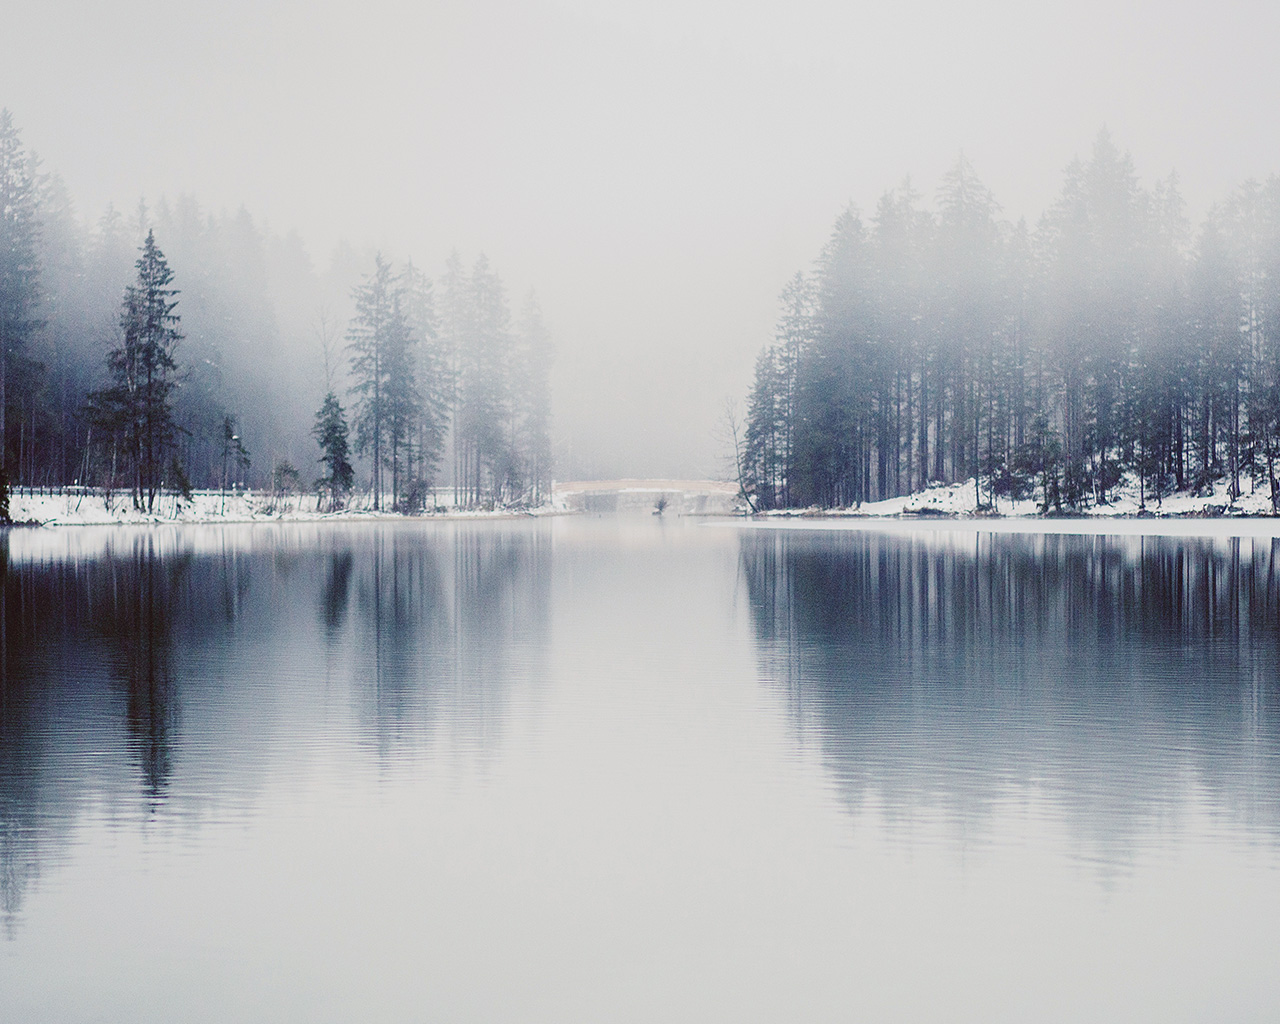 Fall Car Wallpaper Nk06 Winter Lake White Blue Wood Nature Fog Wallpaper